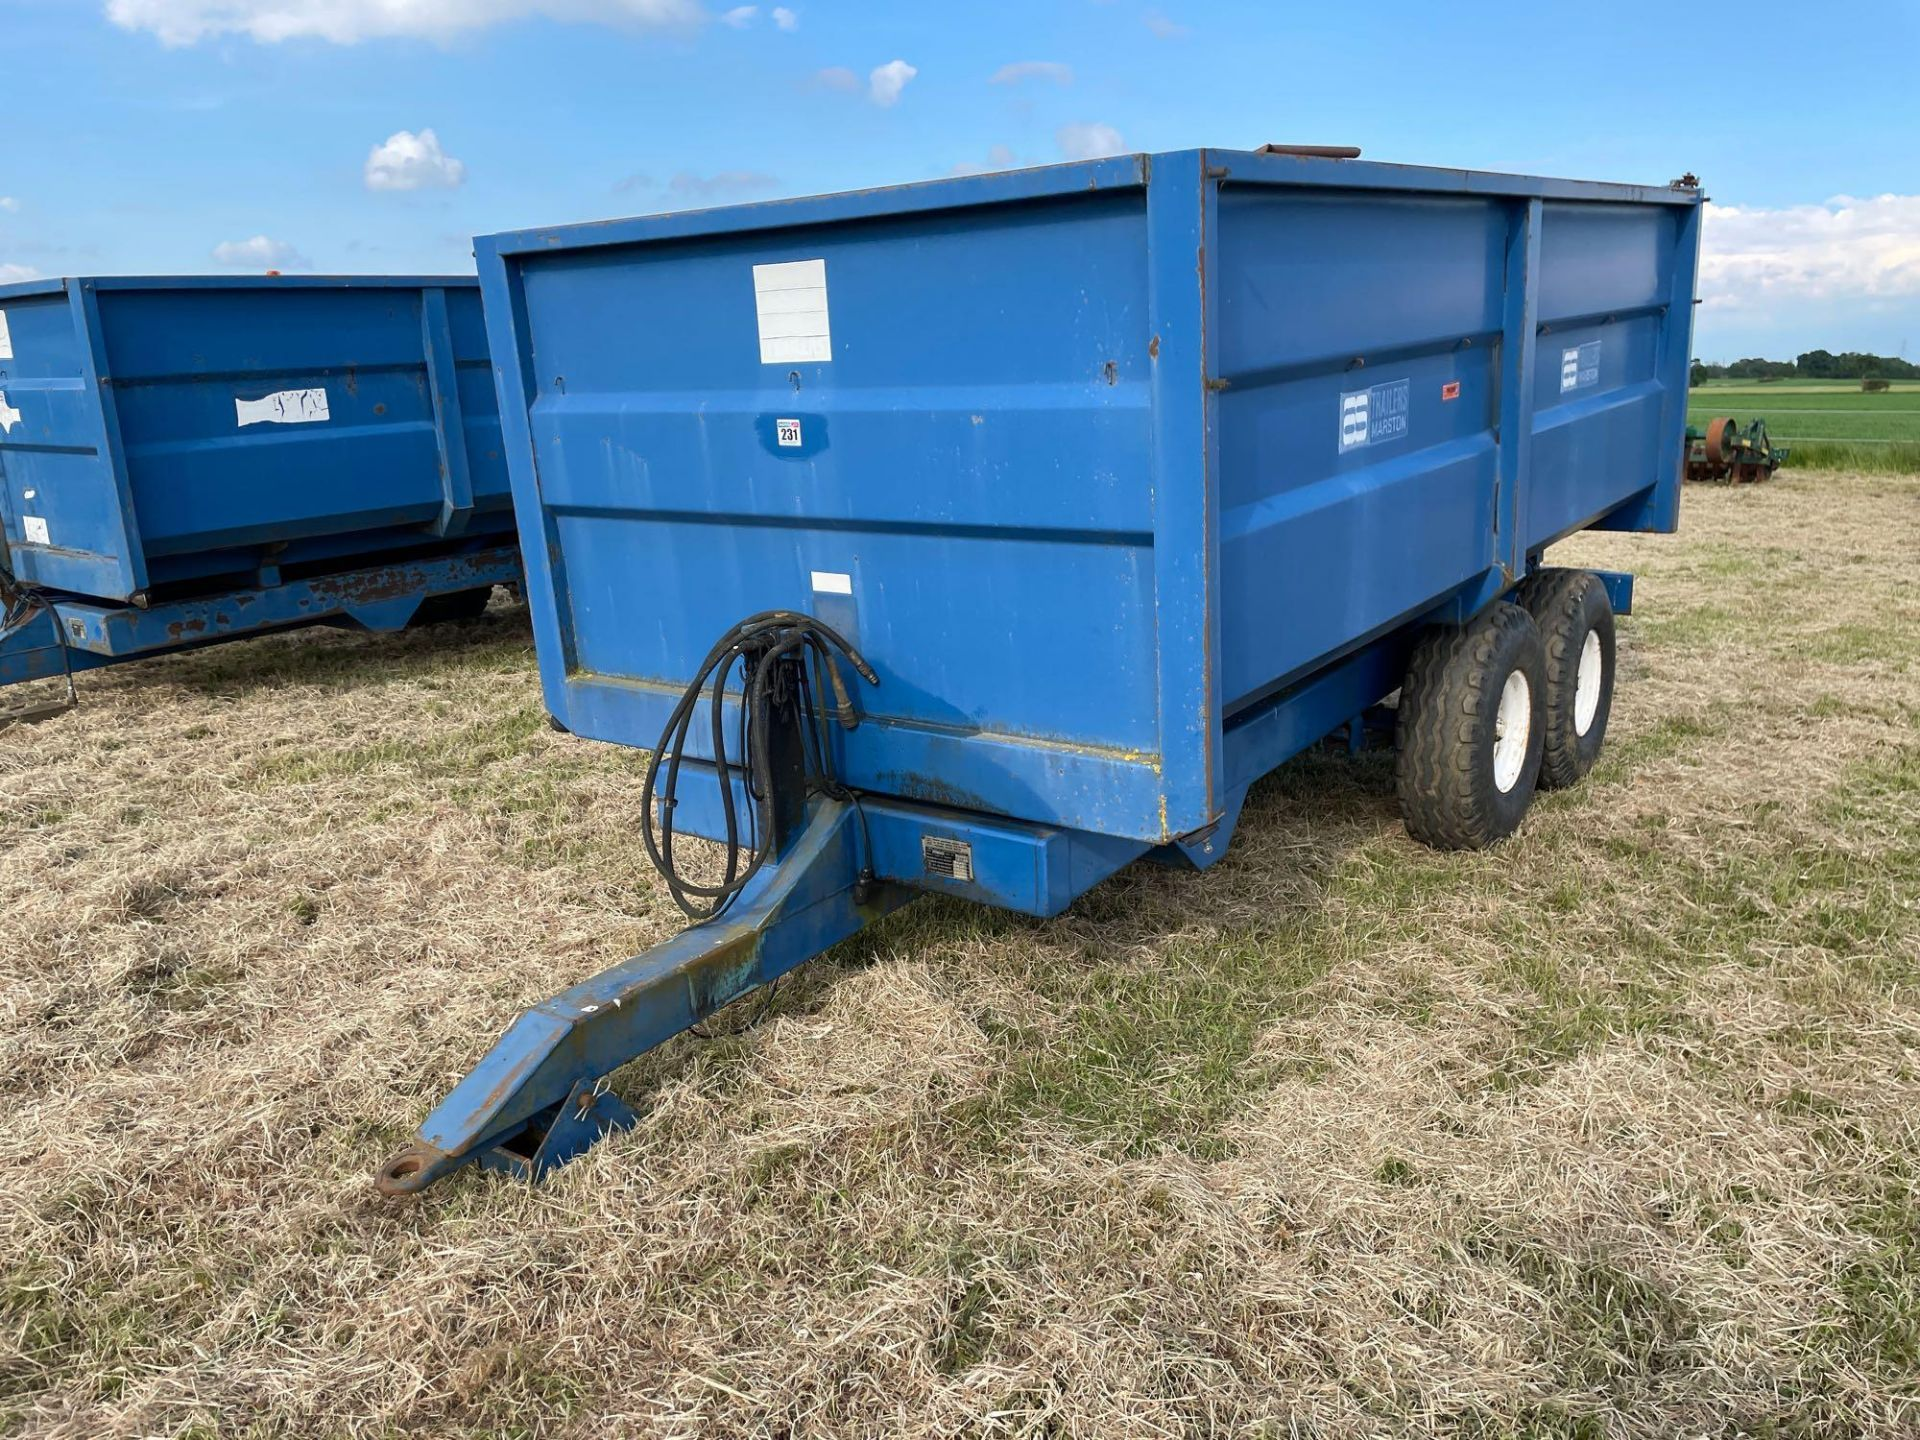 1986 AS Marston 8t twin axle grain trailer, manual tailgate and grain chute on 12.5/80-15.3 wheels a - Image 14 of 14